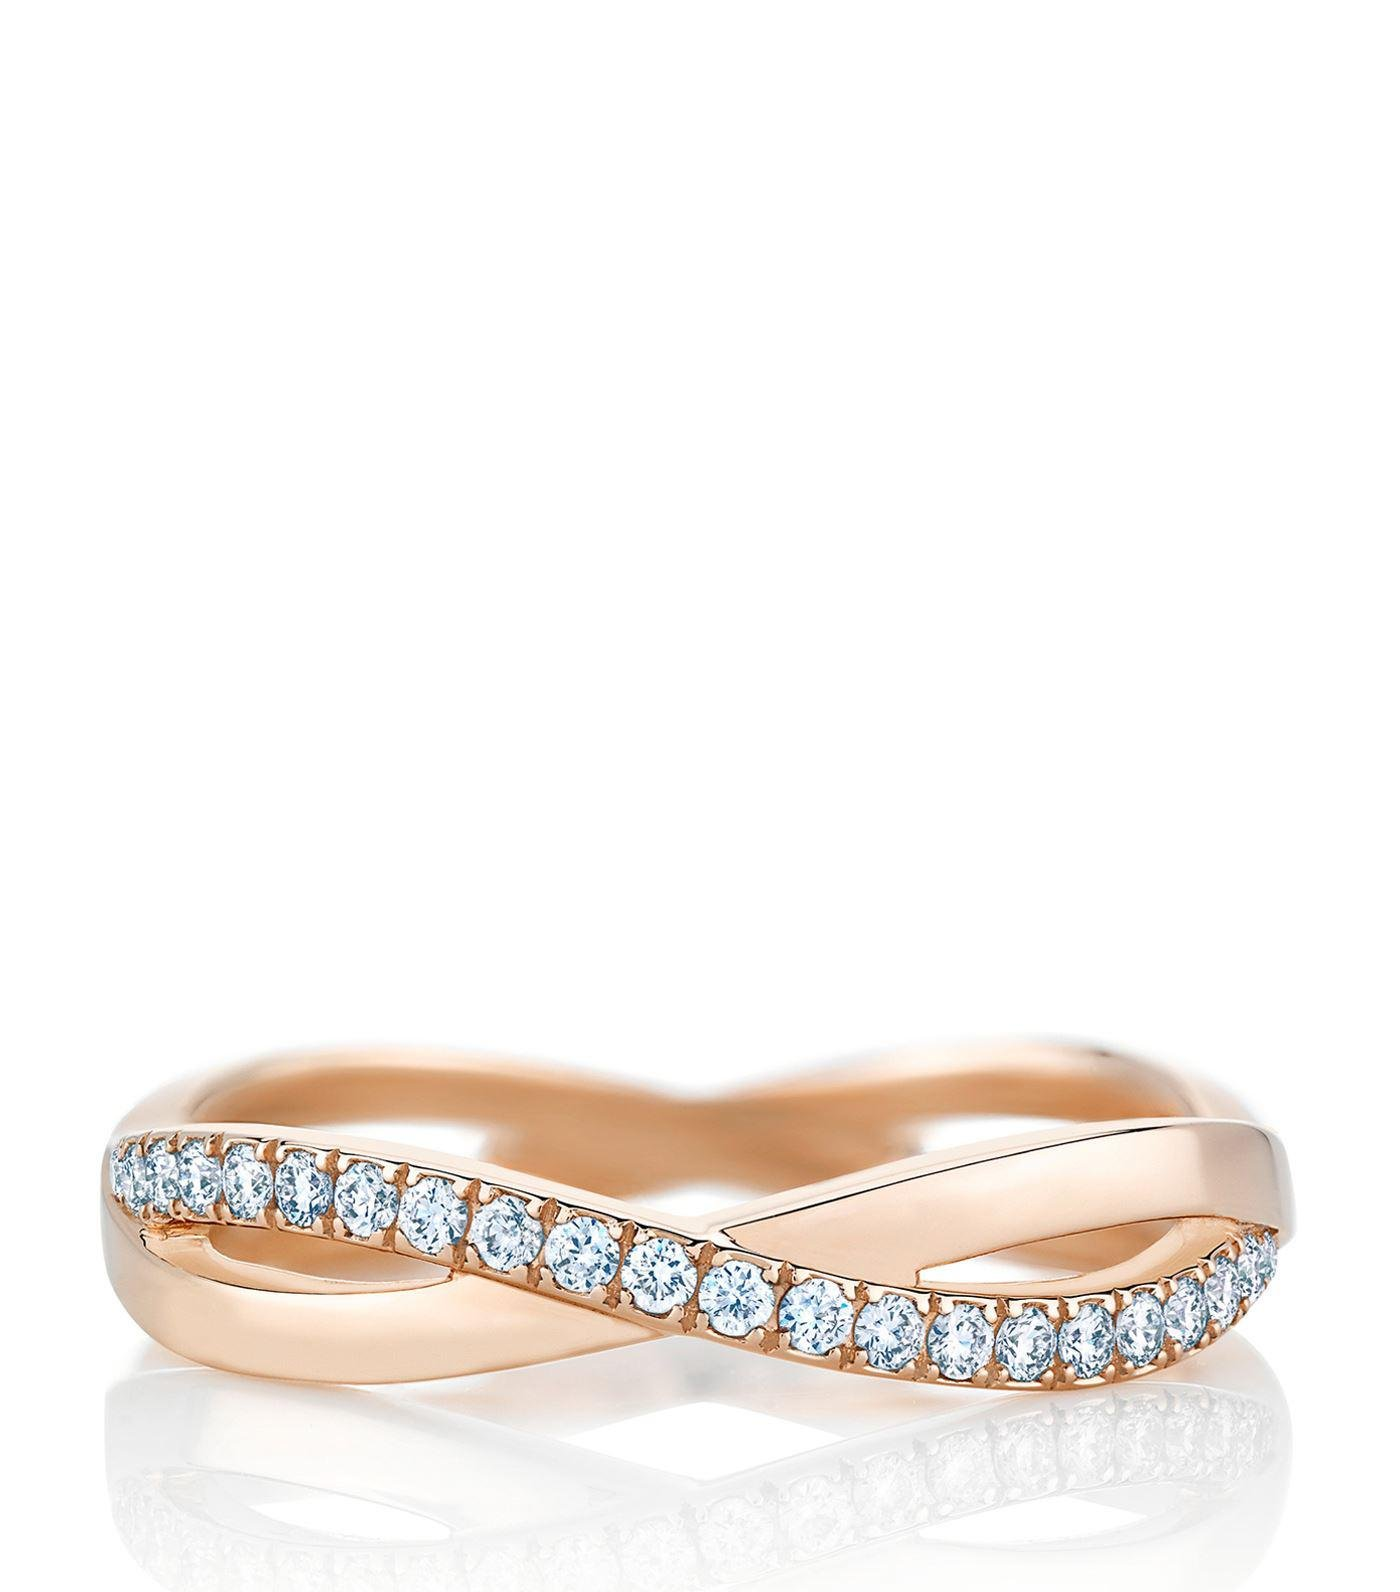 bands wedding gold eternity zirconia tiffany infinity rings band ring cubic meaning